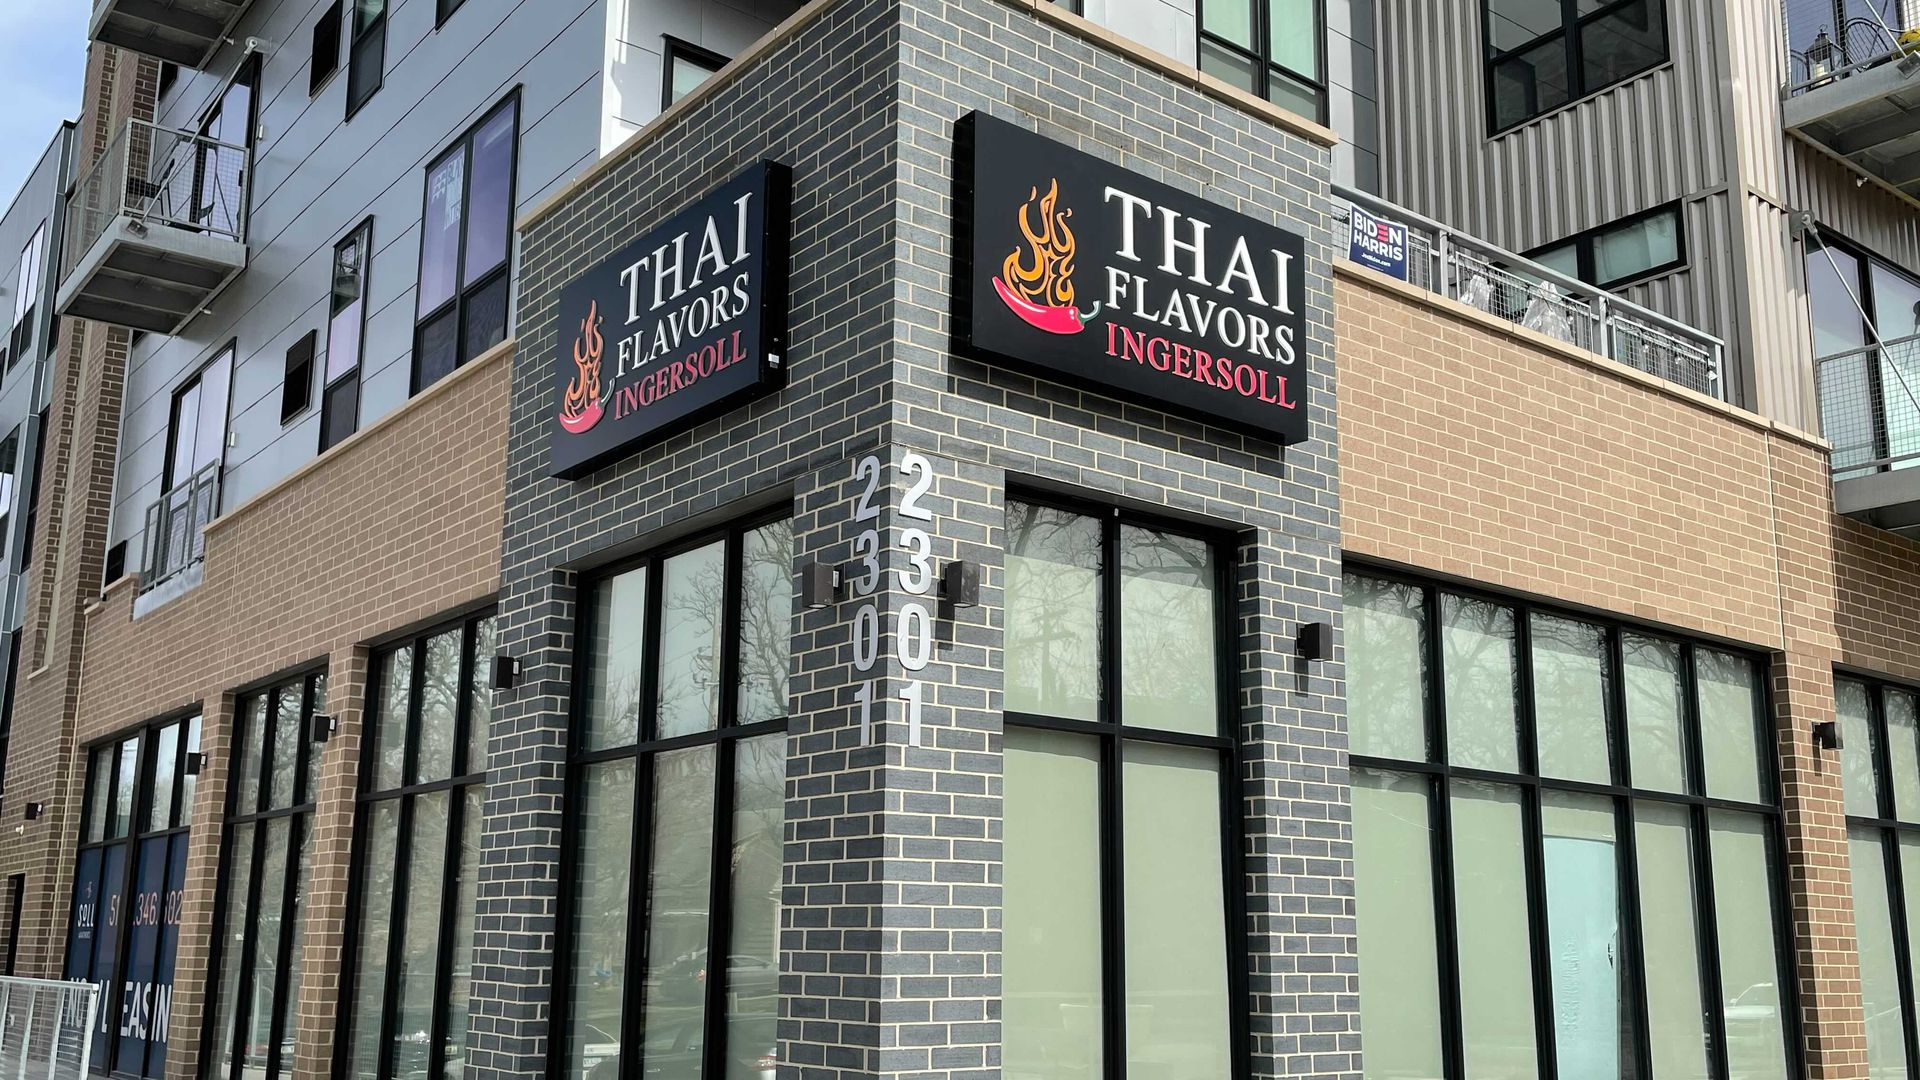 The new Thai Flavors storefront off Ingersoll Avenue.